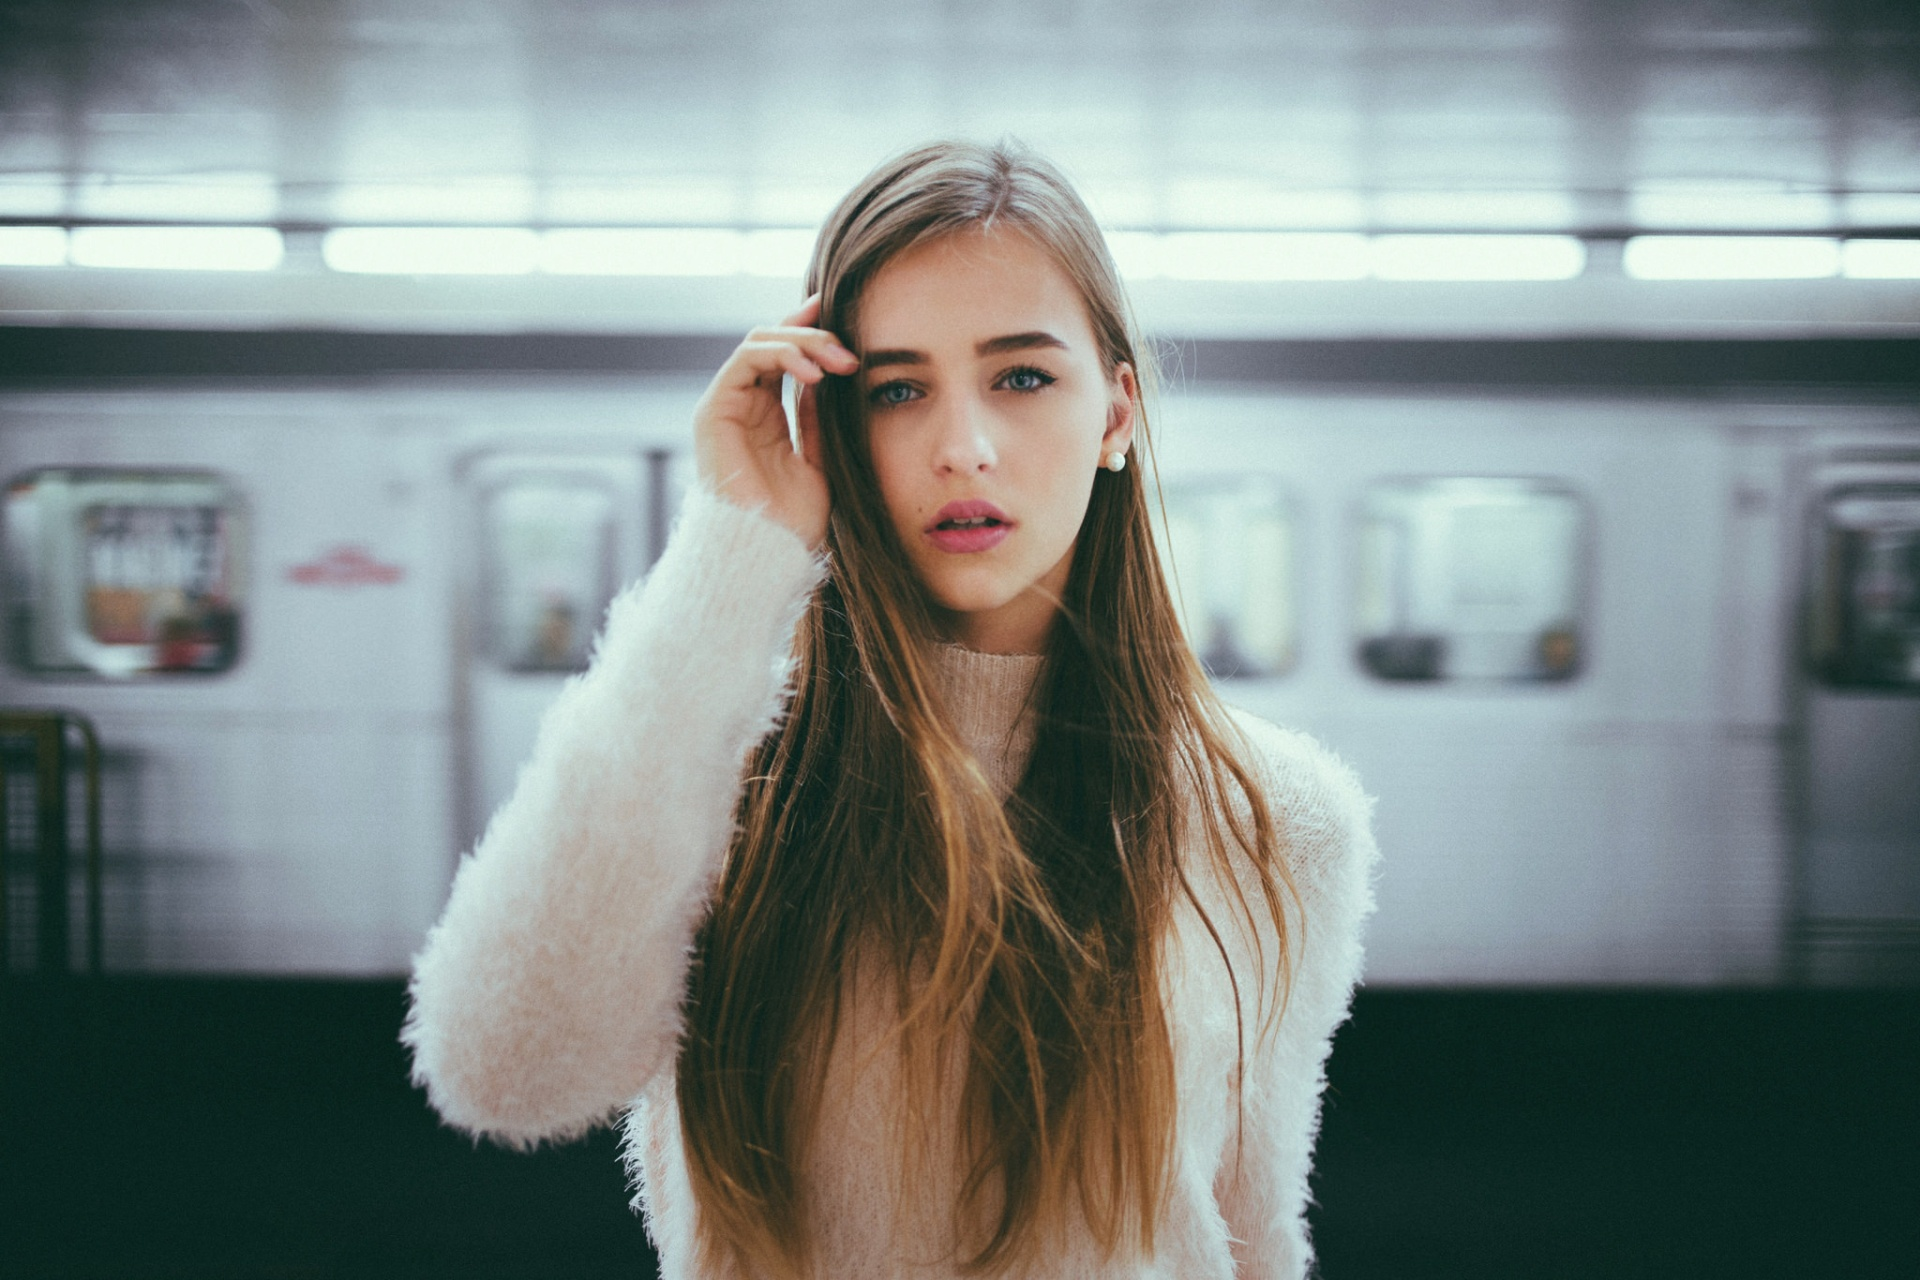 25 Signs You May Be Clairsentient — Someone Who Feels Things Very Deeply